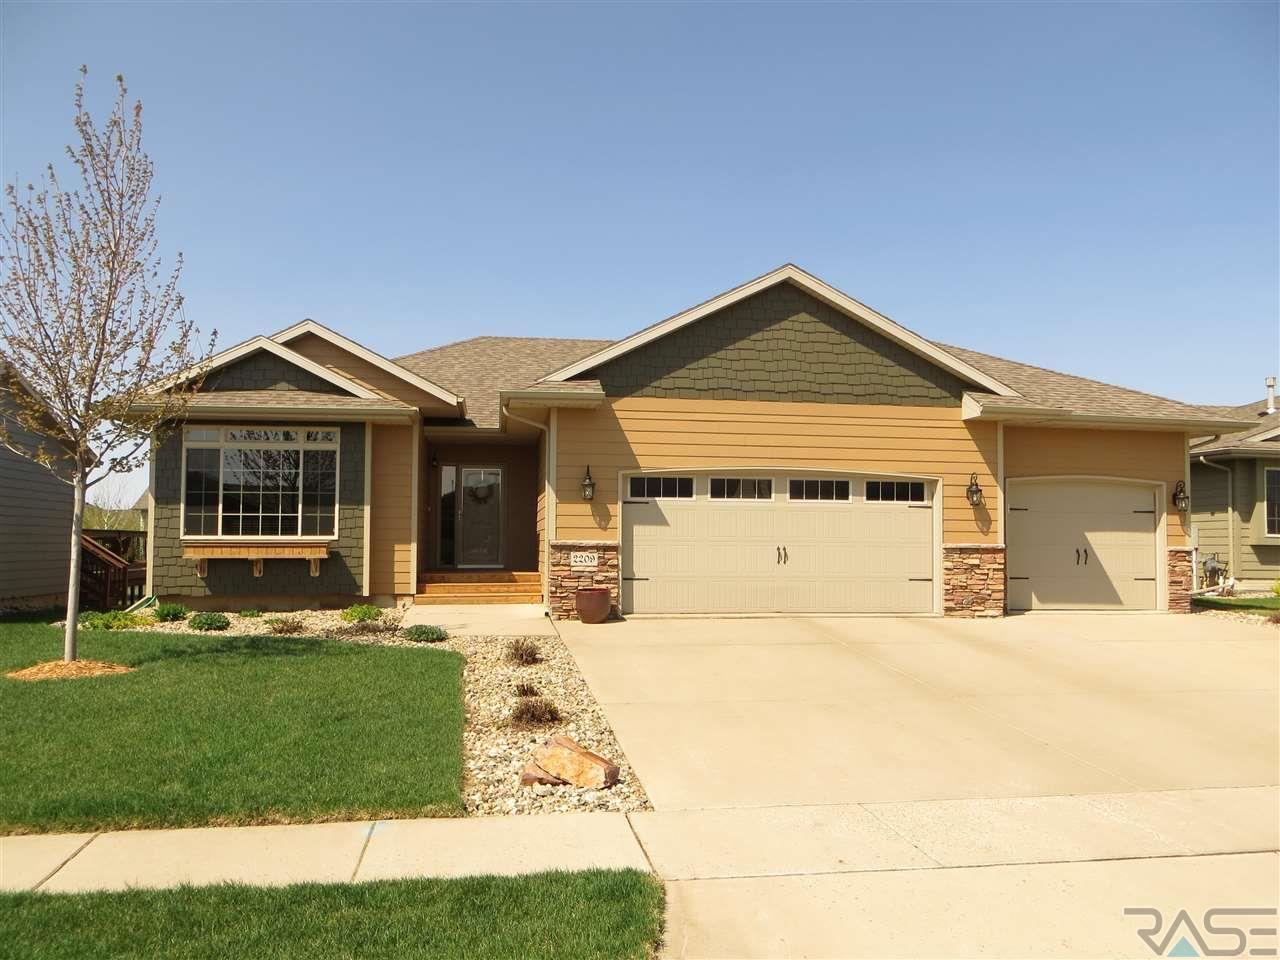 2209 S June Ave, SIOUX FALLS